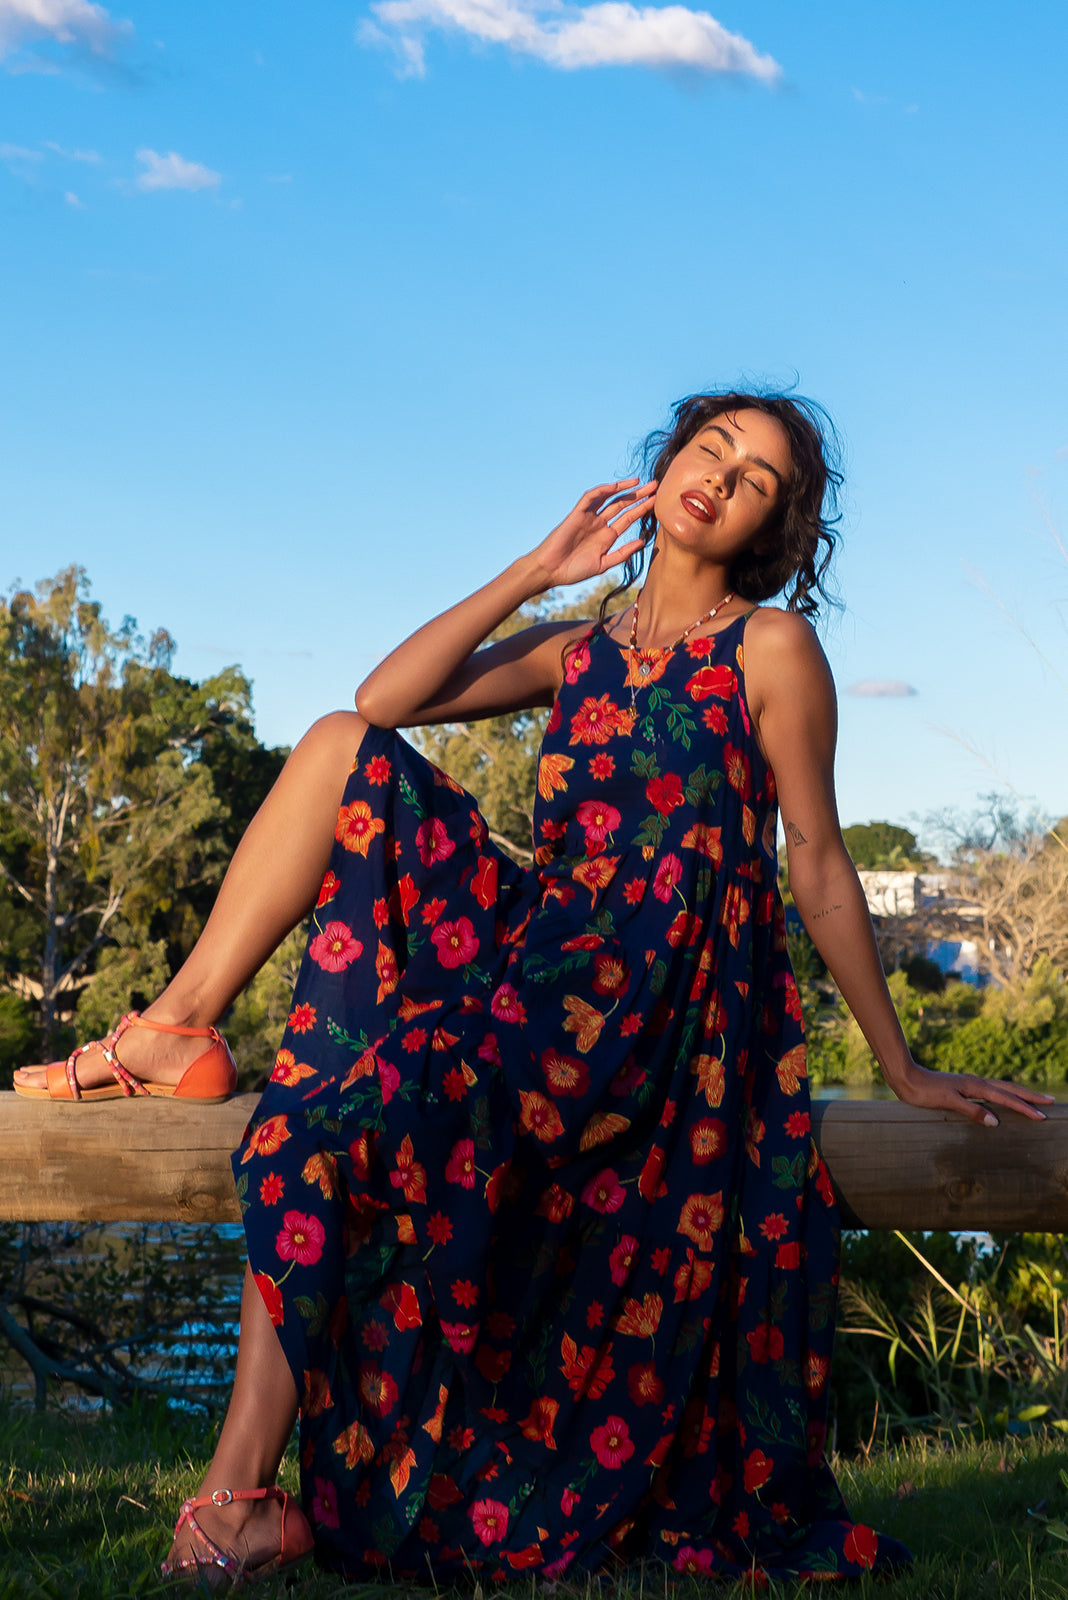 Lulu Darling Navy Kiss Maxi Dress features high neck with thin straps, full, tiered skirt falling from under bust, deep side pockets, 70% Cotton and 30% Rayon in bright deep navy base with colourful, bright floral print.